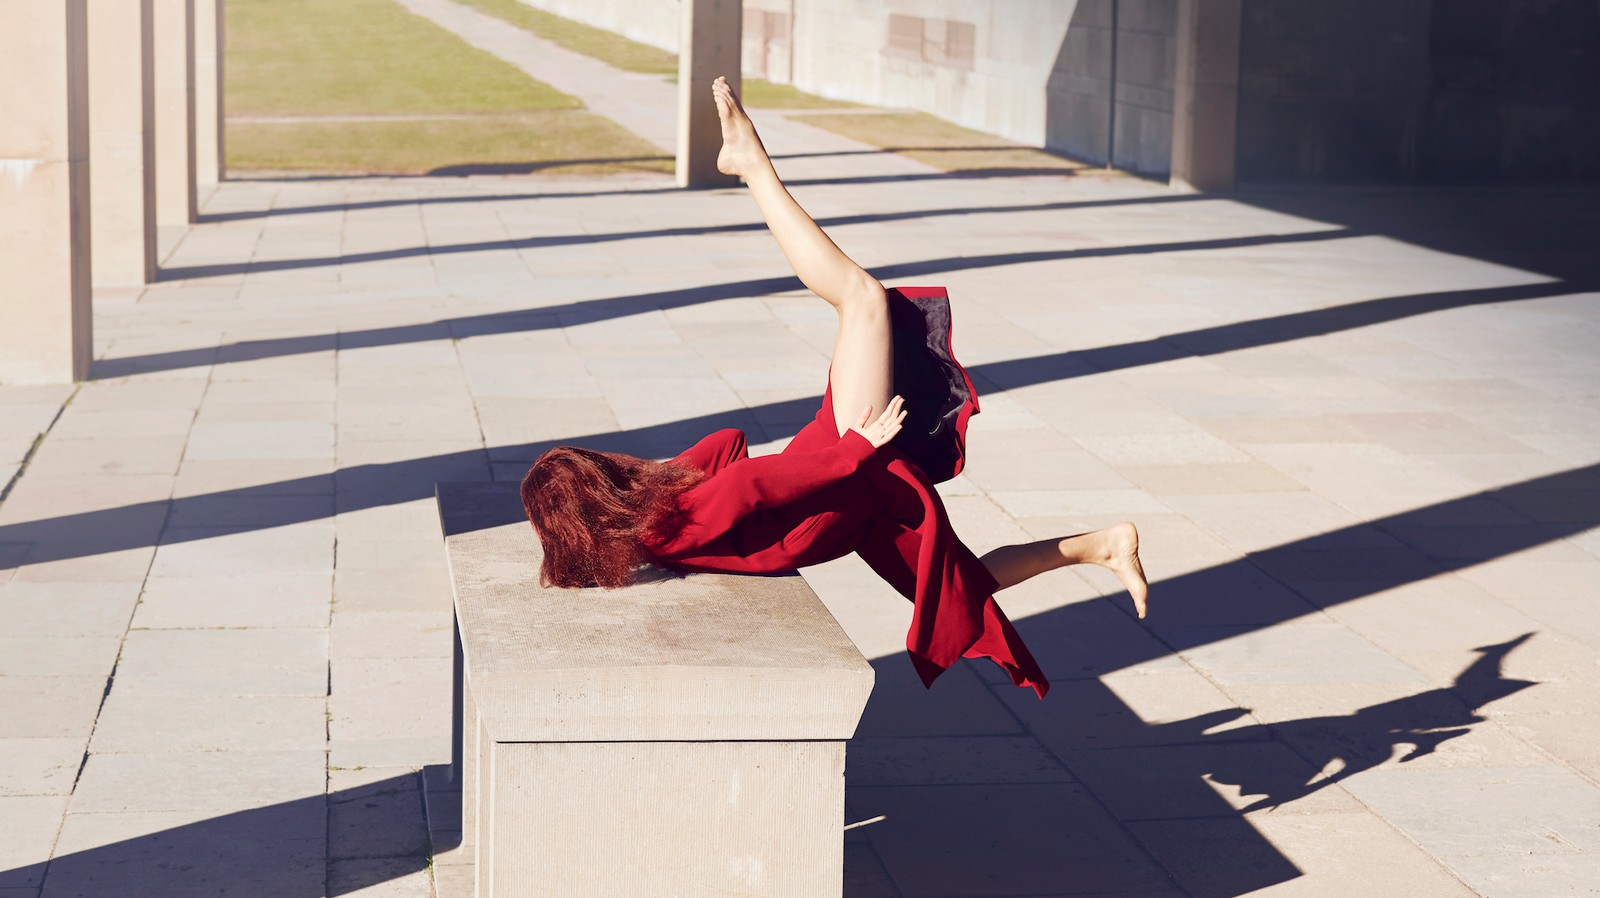 Impossibly Posed Fashion Photography Defies the Laws of Physics